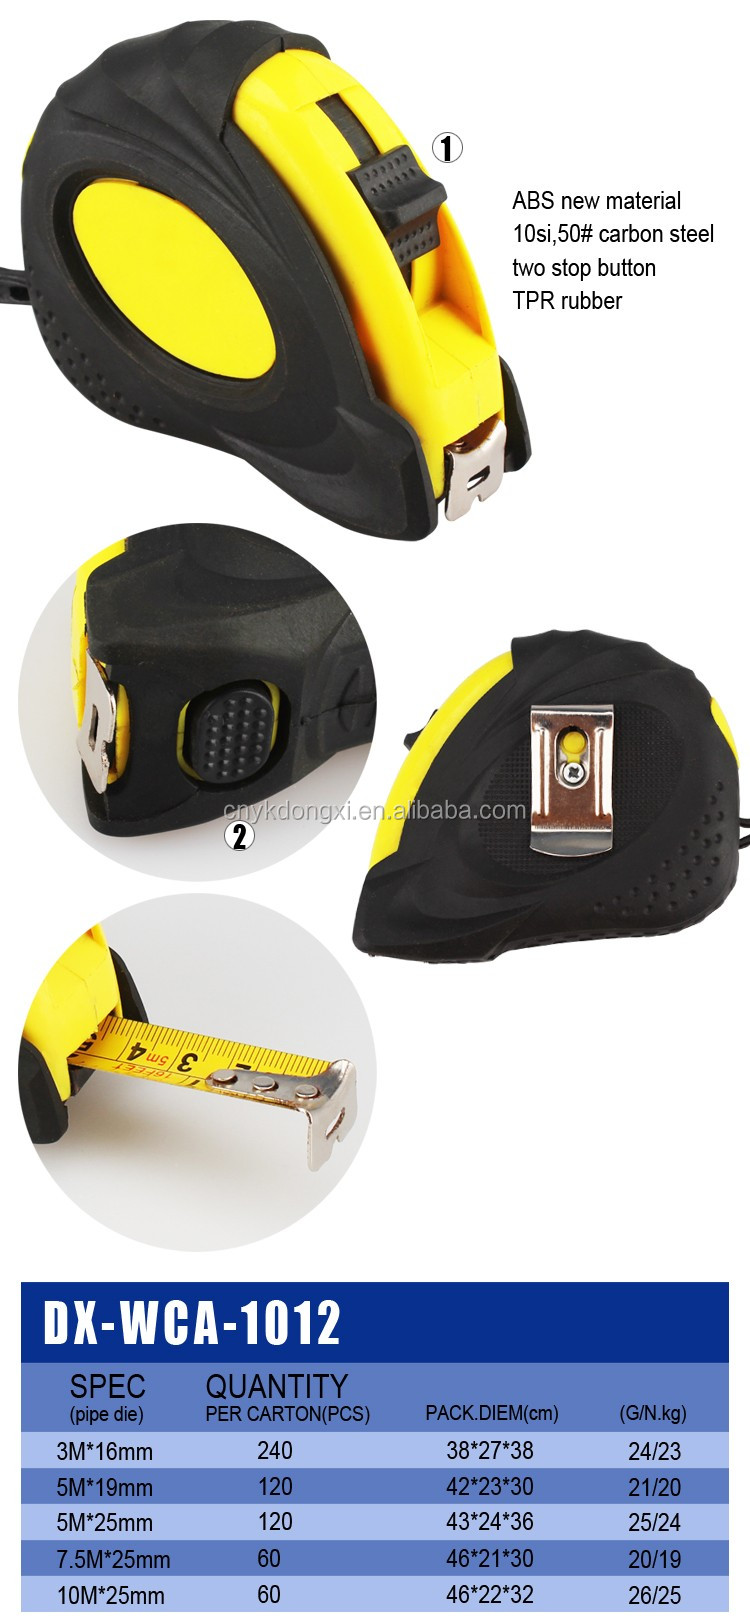 Durable carbon steel retractable steel tape measure for DIY using